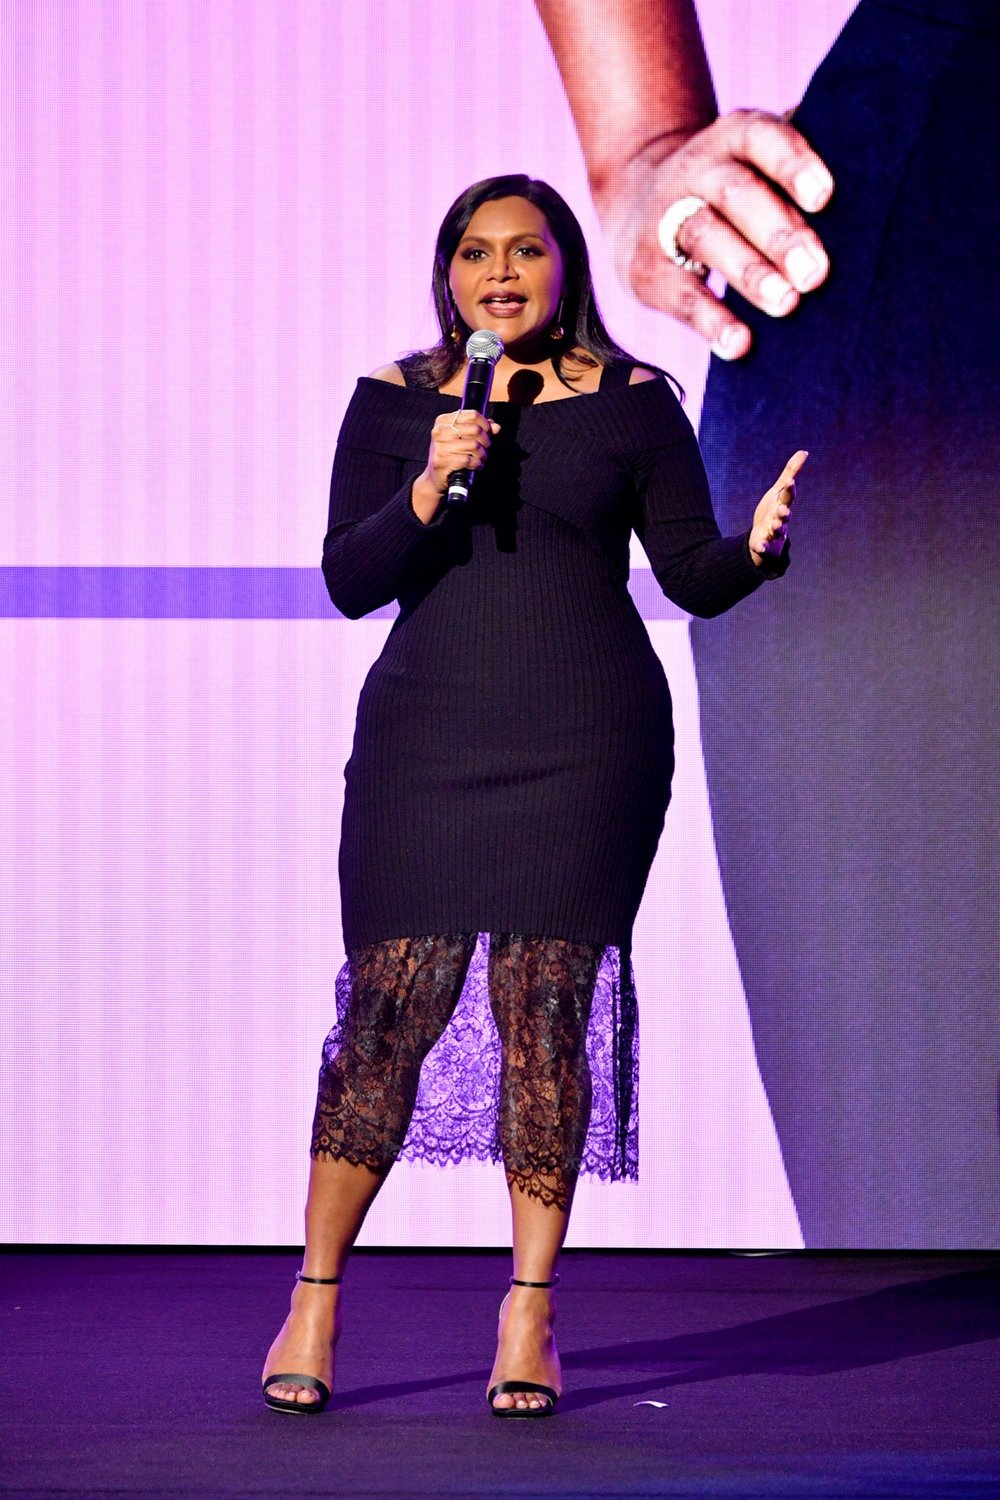 NEW YORK, NY - MAY 02:  Mindy Kaling speaks onstage during Hulu Upfront 2018 at The Hulu Theater at Madison Square Garden on May 2, 2018 in New York City.  (Photo by Dia Dipasupil/Getty Images for Hulu) *** Local Caption *** Mindy Kaling